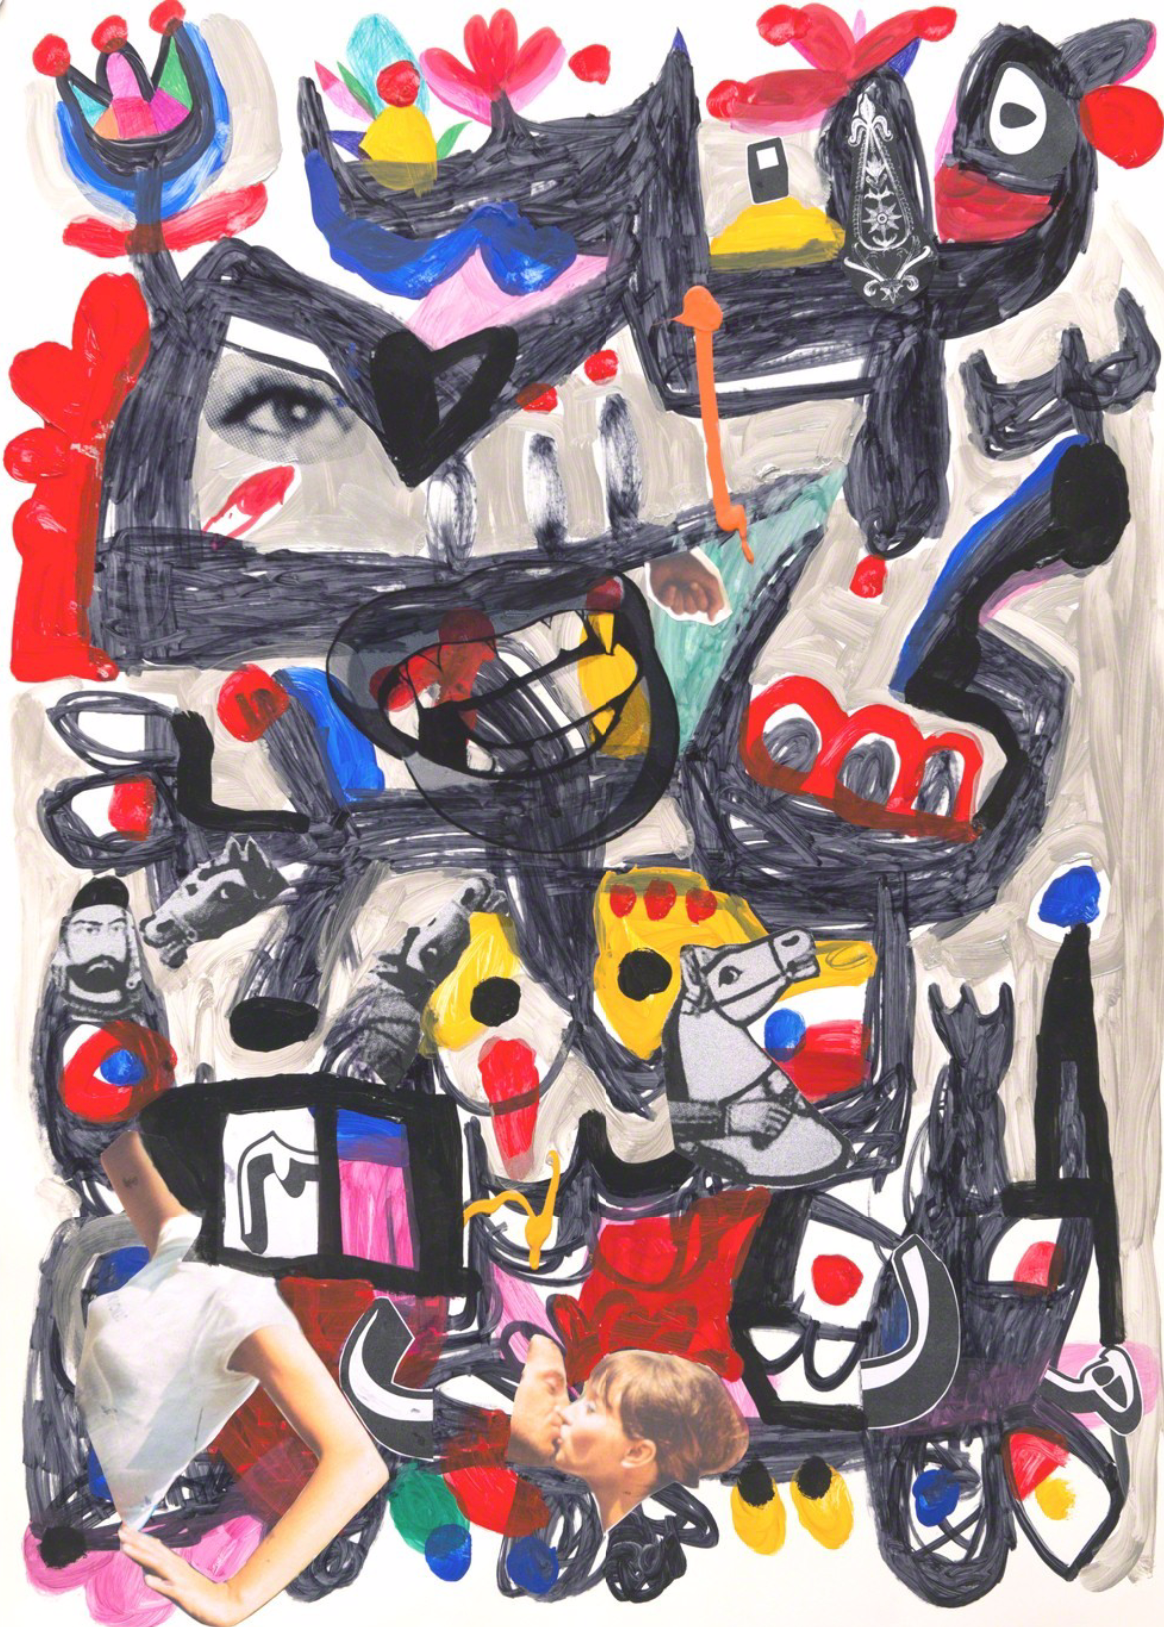 Mohammad Khodashenas, Look, marker, acrylic, sticker and collage on coated paper, 100 x 70 cm, 2017